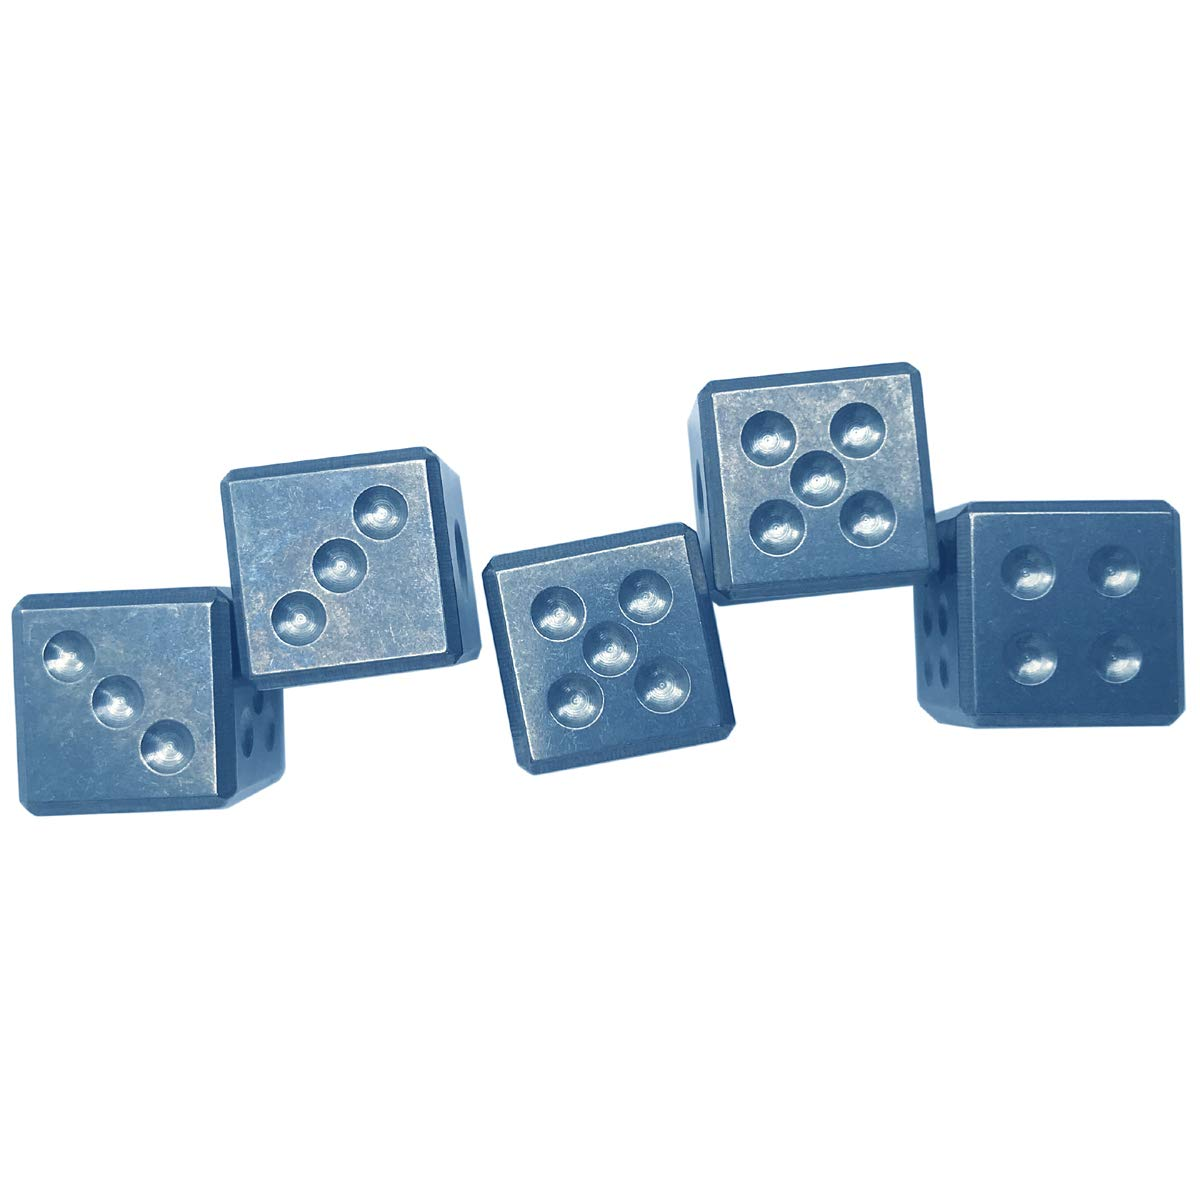 FREELOVE Titanium Alloy 6-Sided Game Dice/Ice Cube (Blue, 0.63'')